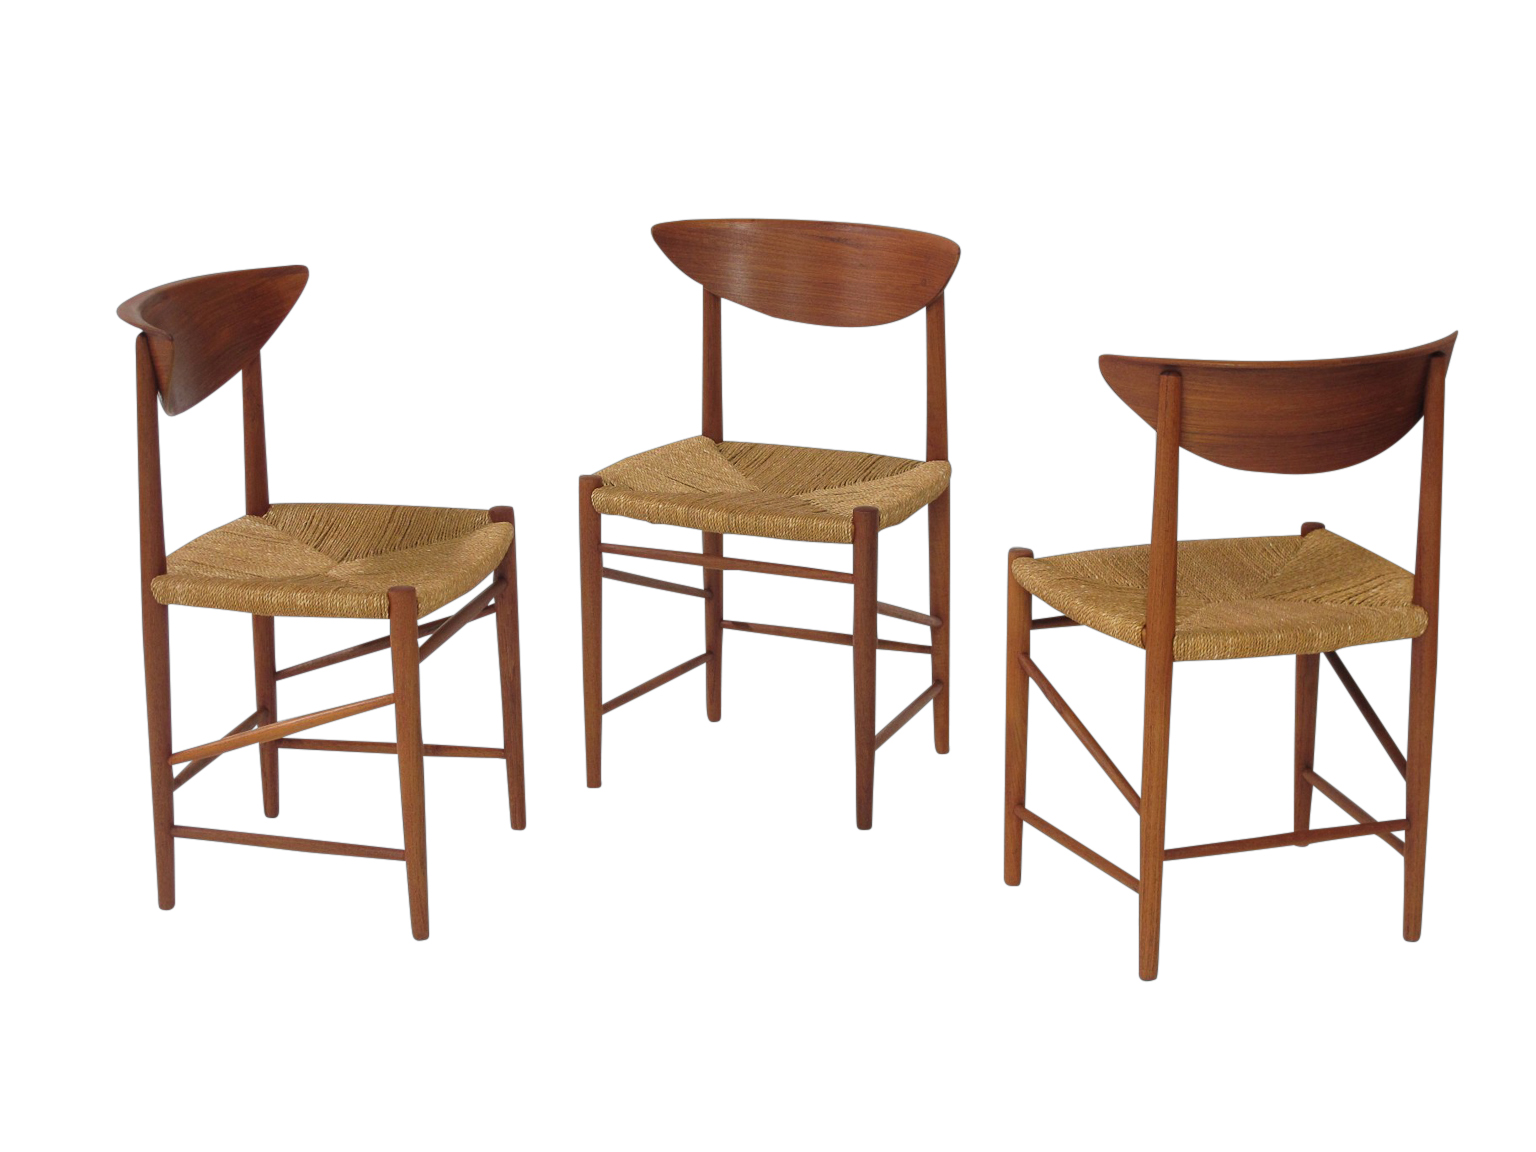 Seagrass Dining Chairs Peter Hvidt Dining Chairs With Seagrass Seats Chris Howard